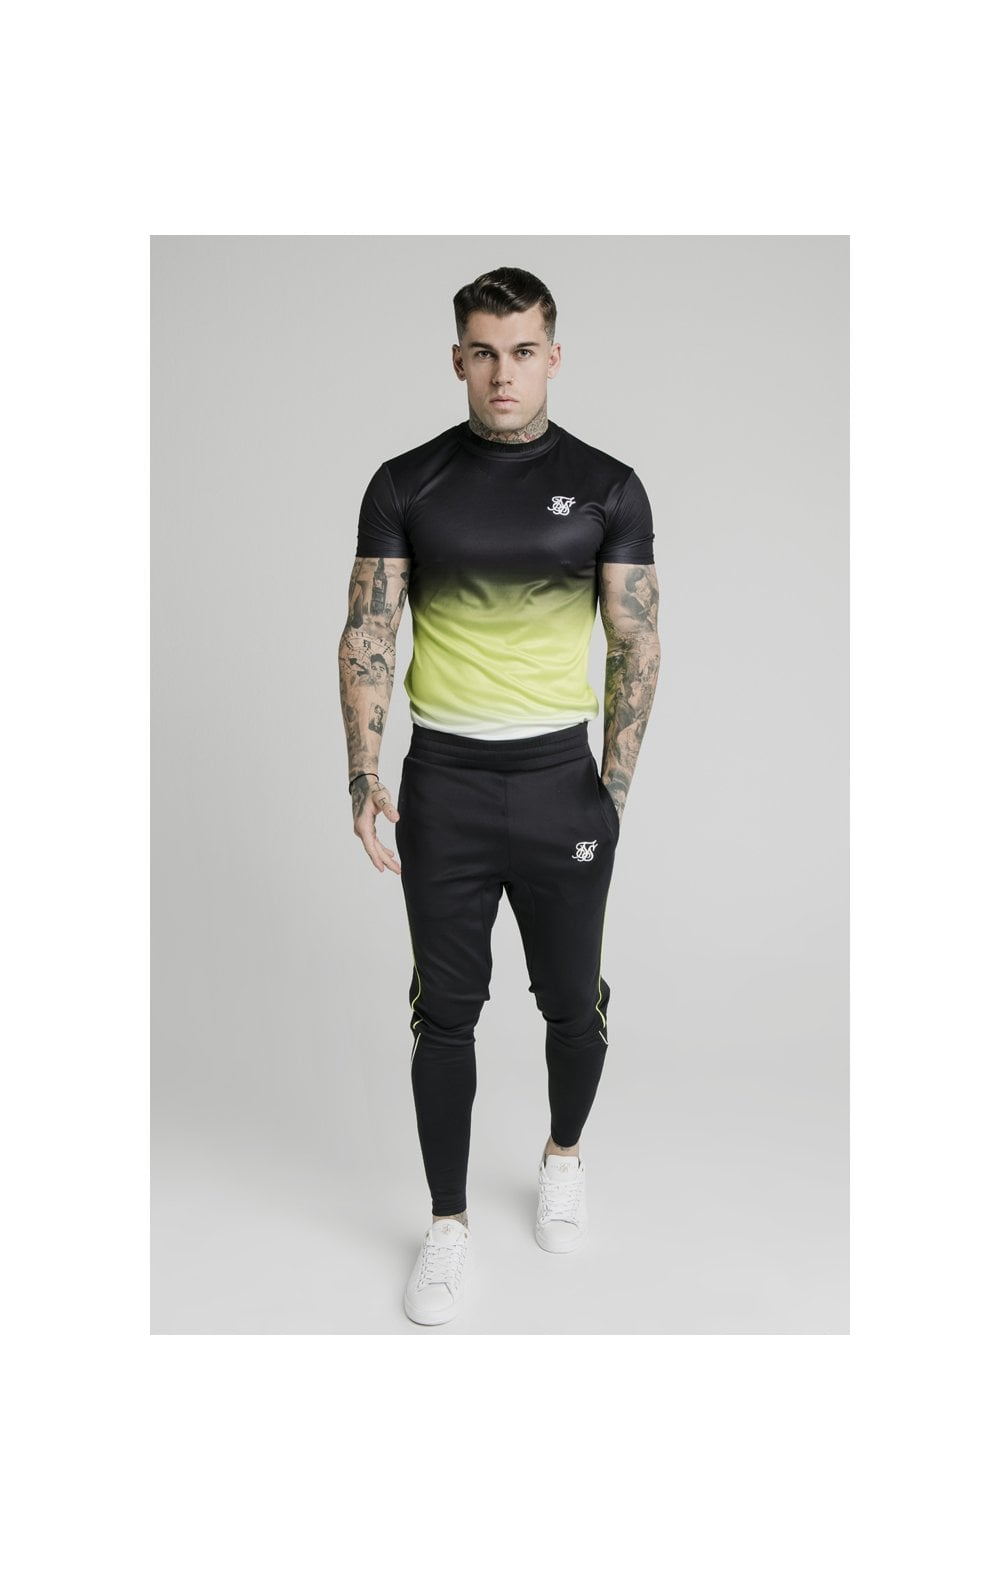 Load image into Gallery viewer, SikSilk Tri Fade Tape Track Pants - Black, Fluro & White (4)